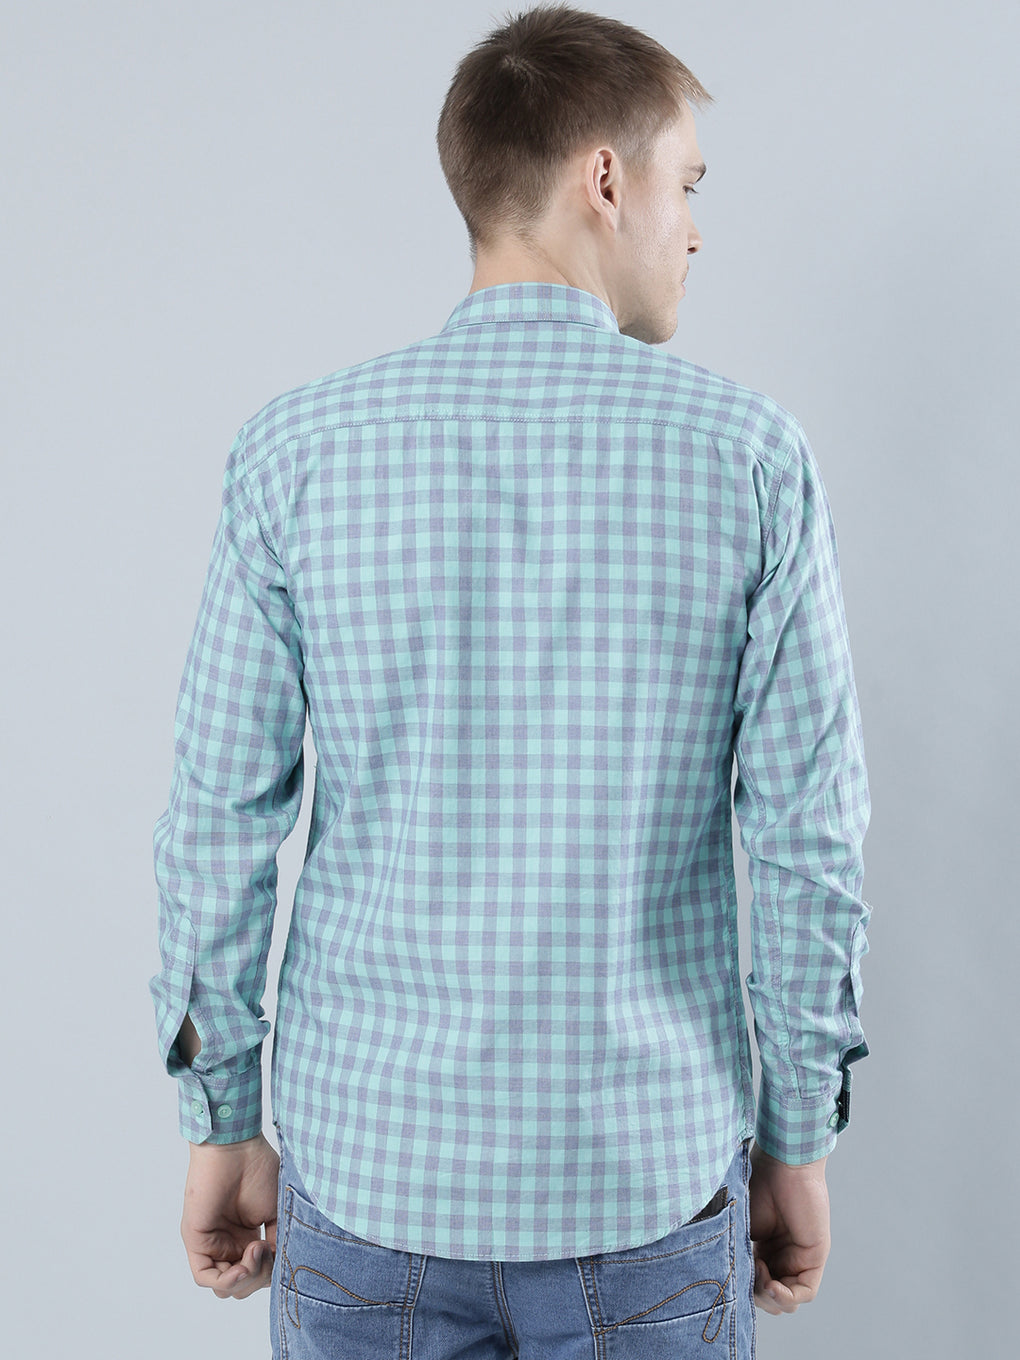 COBB Green Checked Slim Fit Casaul Shirt